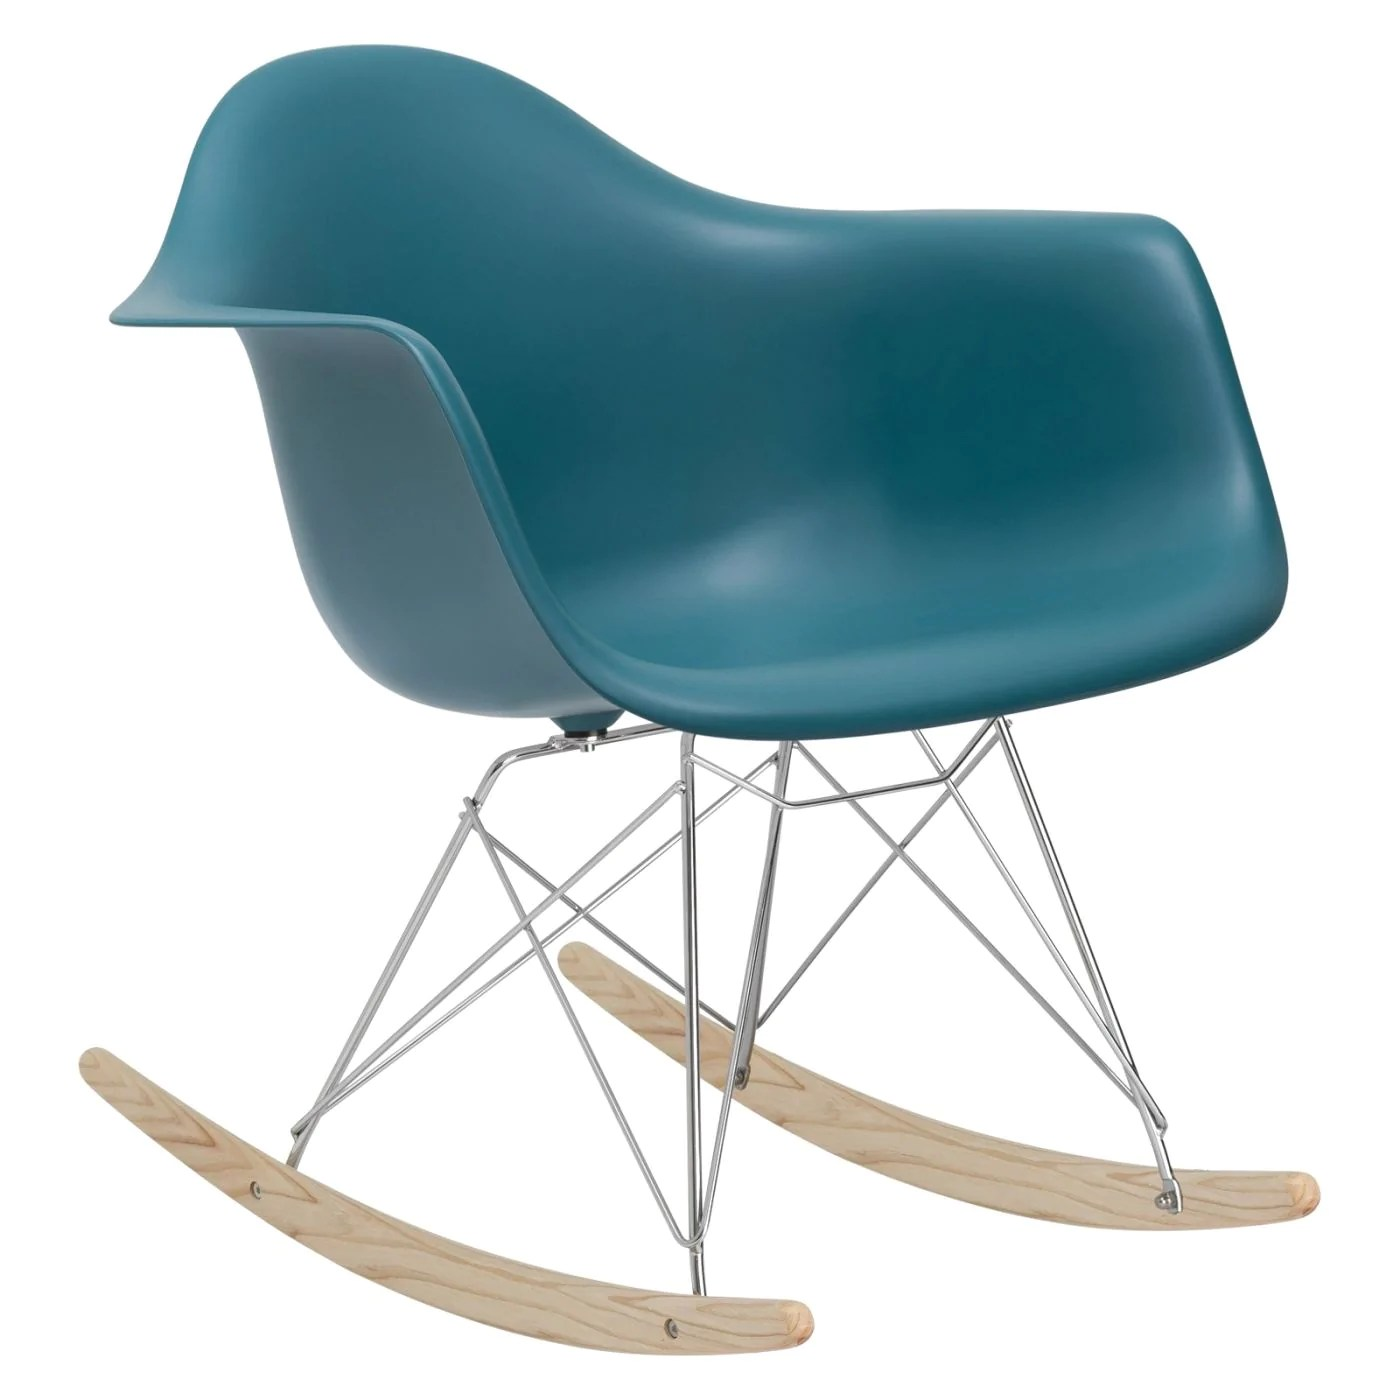 Teal Rocking Chair Amazing Deal On Edgemod Em 121 Tea Rocker Lounge Chair In